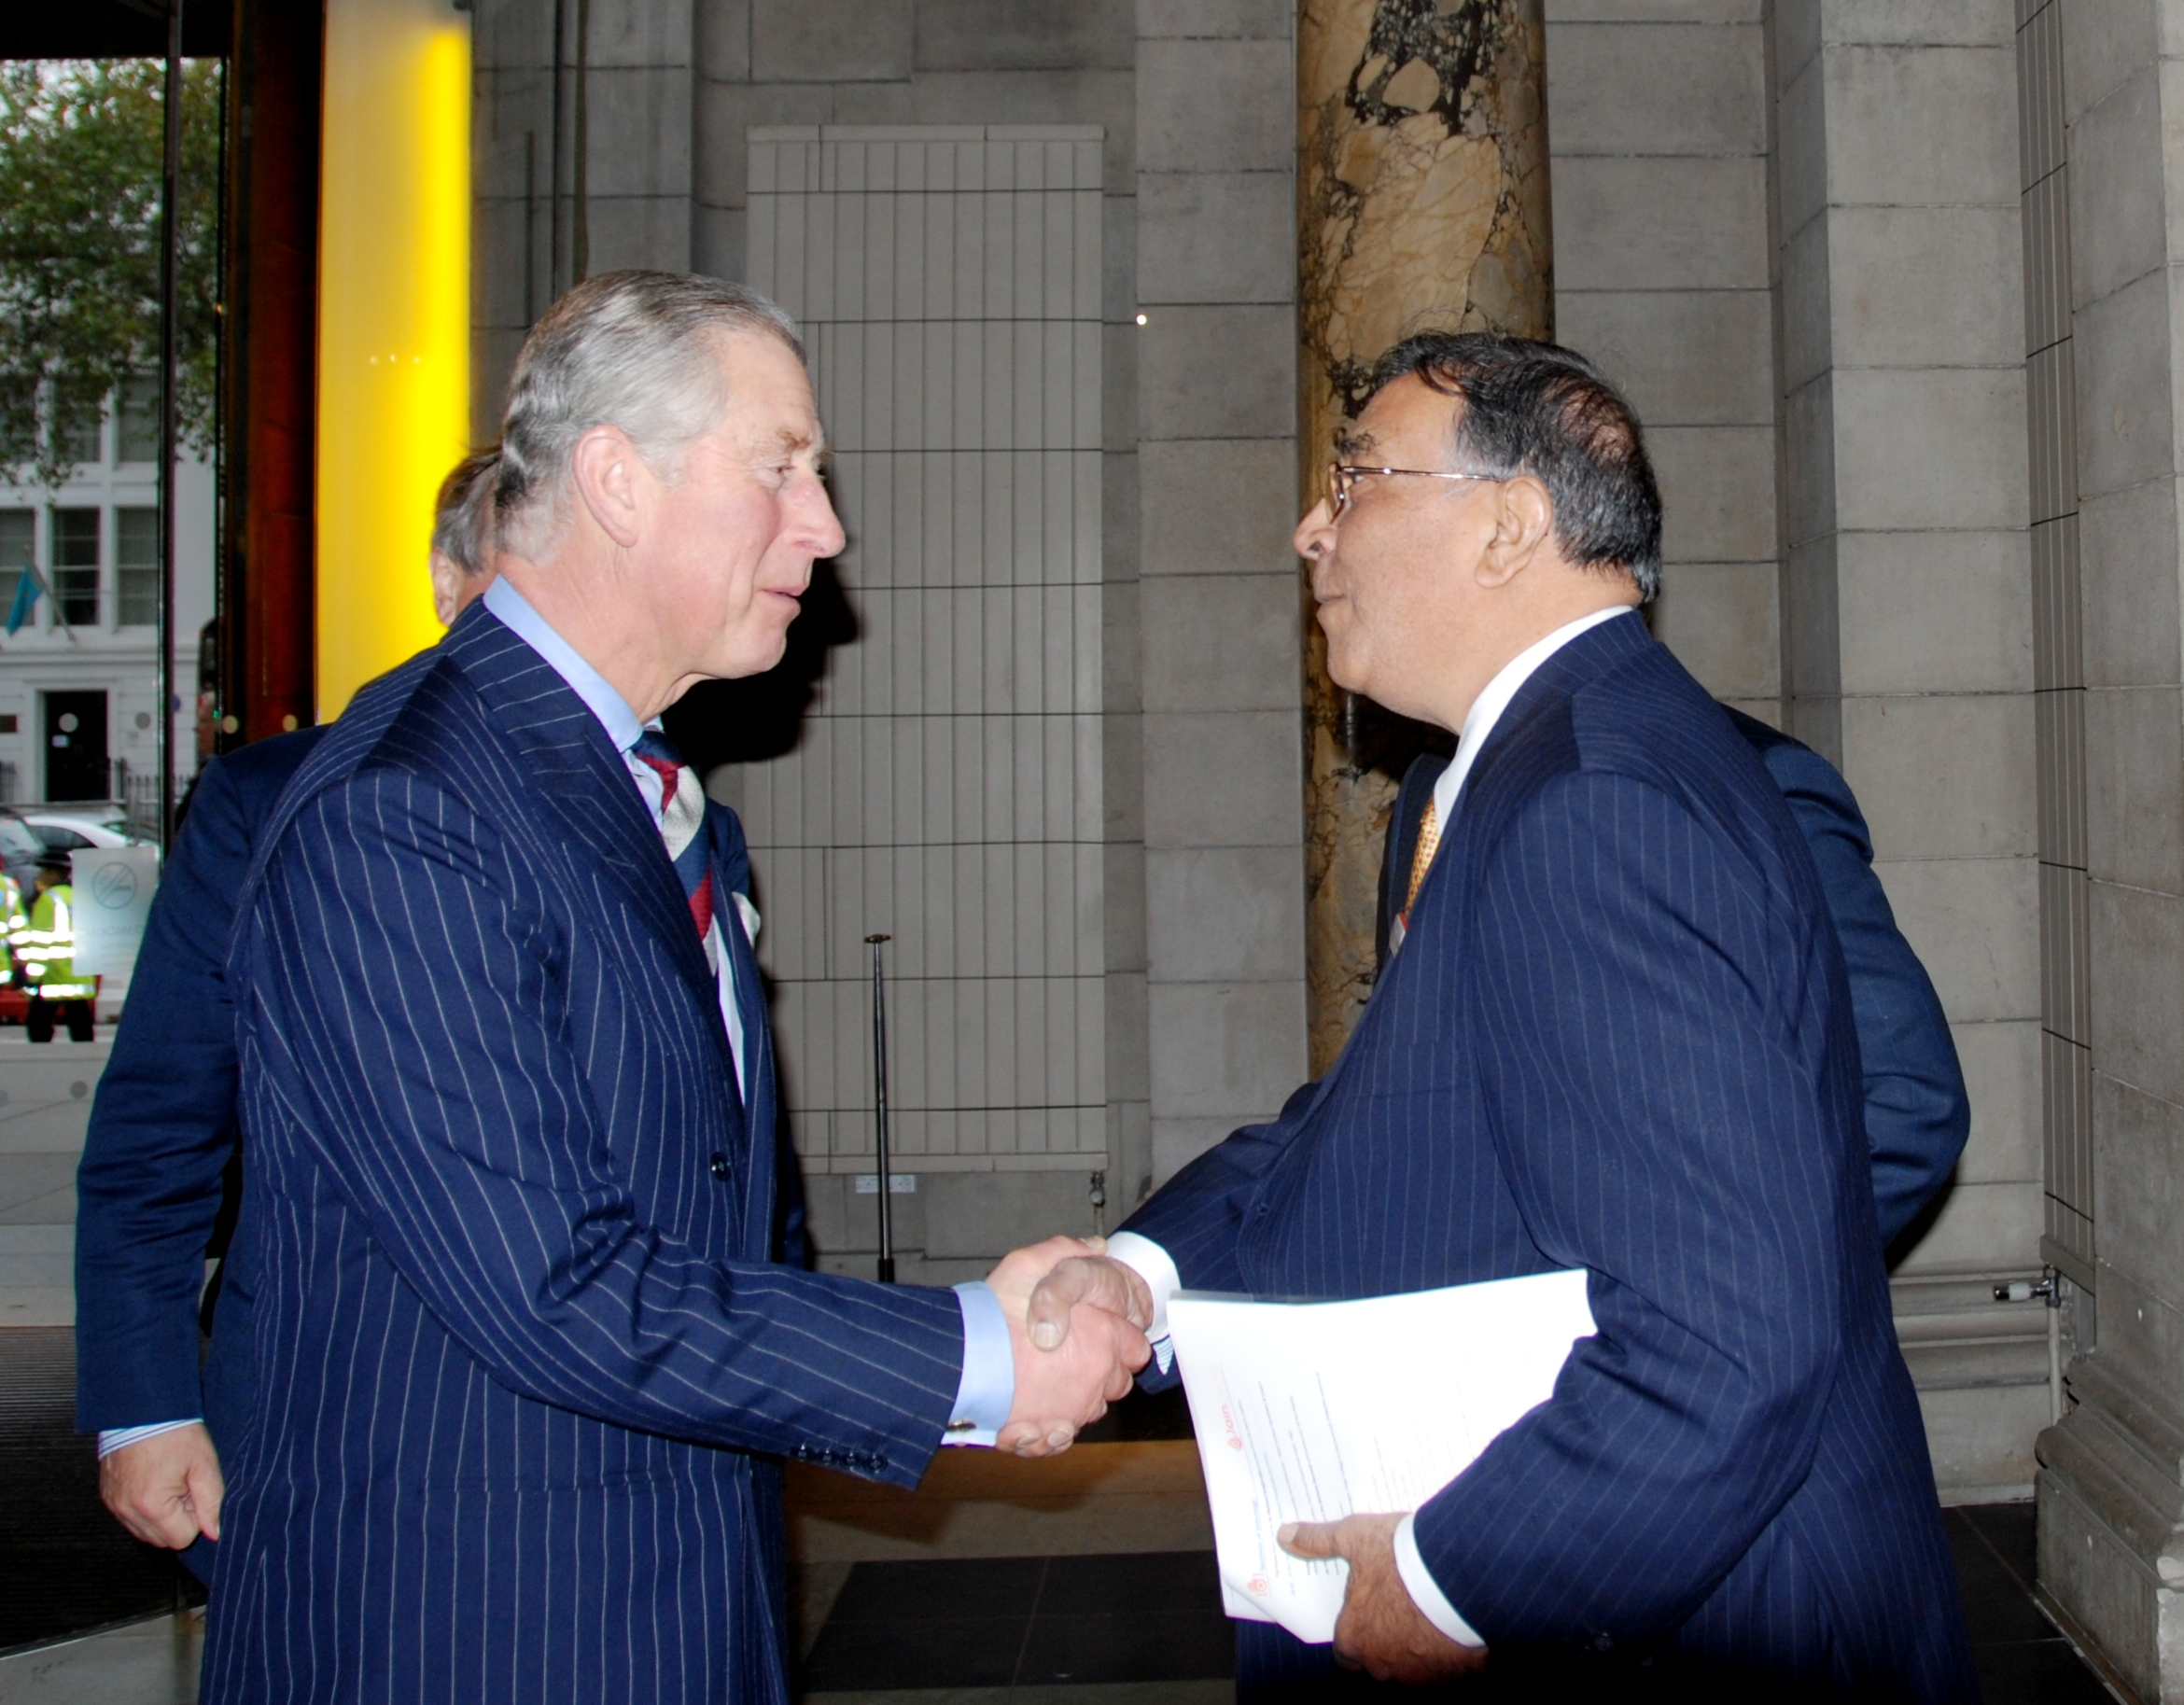 http://www.herenow4u.net/fileadmin/v3media/pics/organisations/IOJ/2010/The_Prince_of_Wales__visit_to_JAINpedia_-_Welcome2.jpg